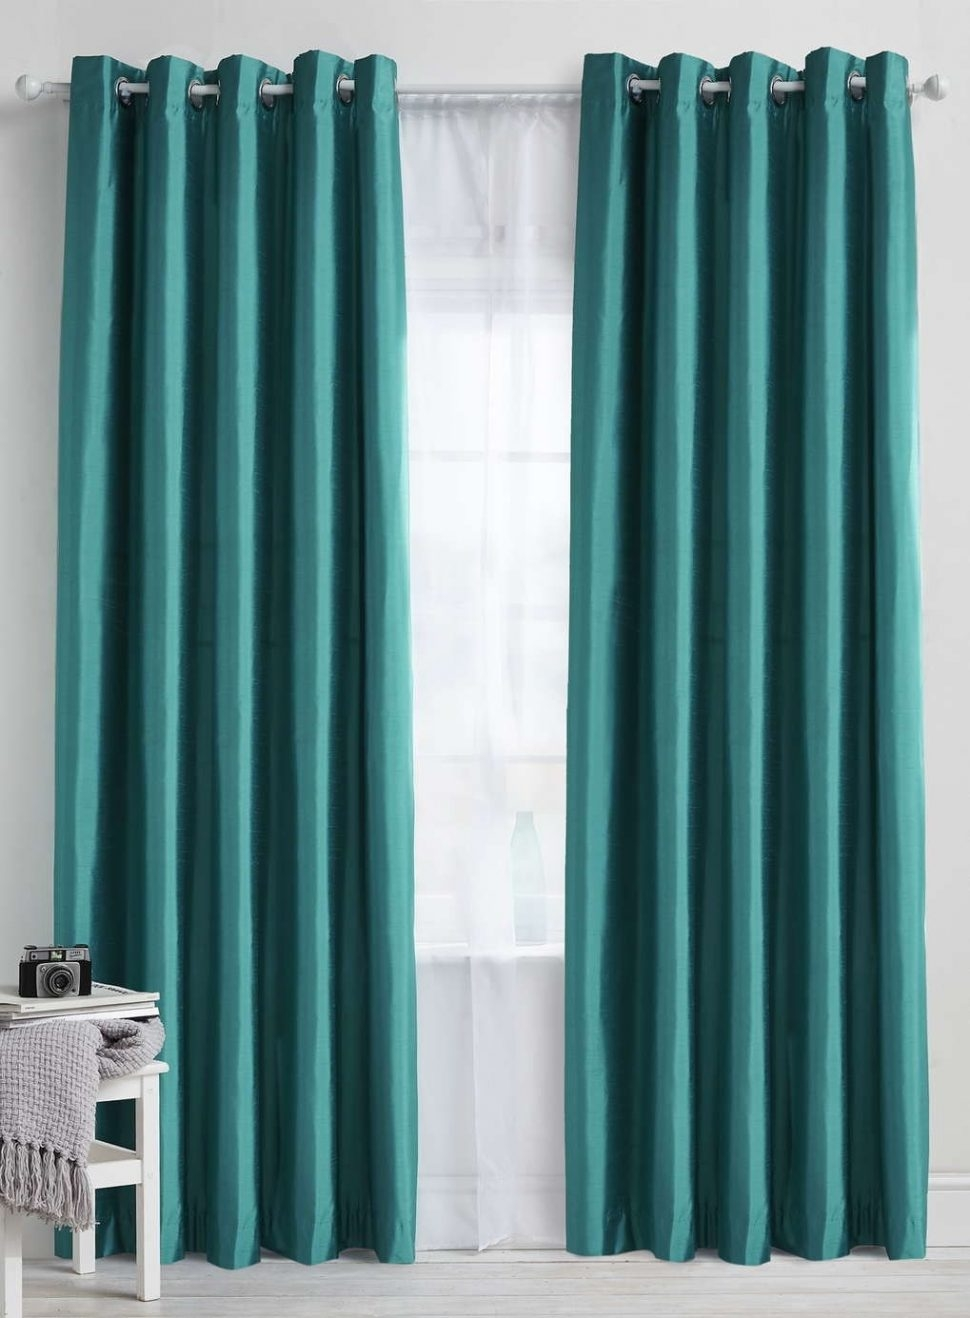 Curtain Teal Shab Chic Patterned Blackout Toile Cheap Modern Regarding Patterned Blackout Curtains (View 2 of 25)